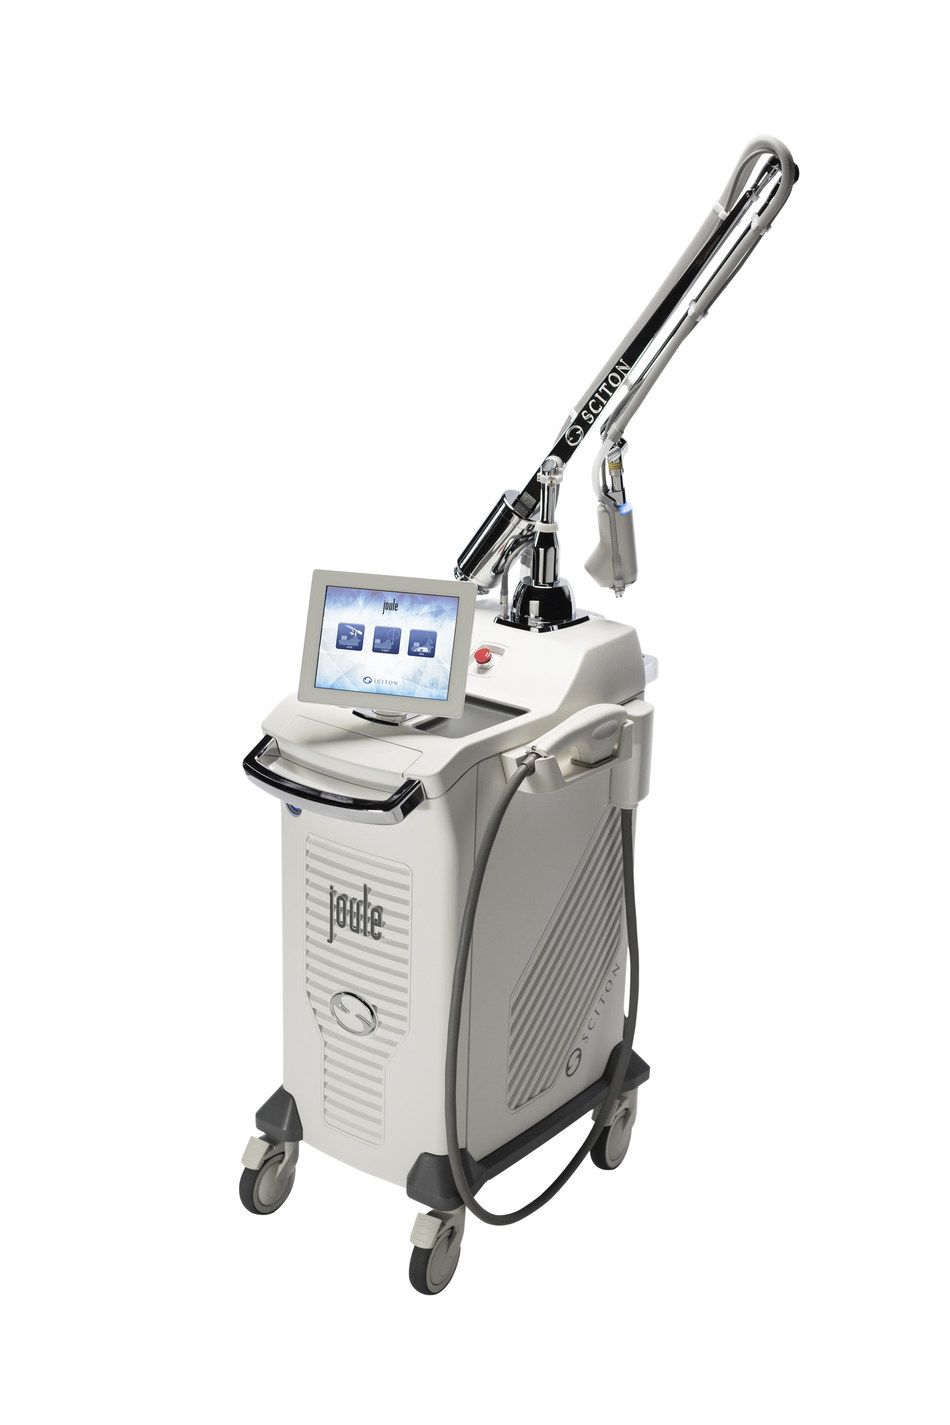 The JOULE X platform leads the way as the most customizable laser and light performance system in the aesthetic and medical market.